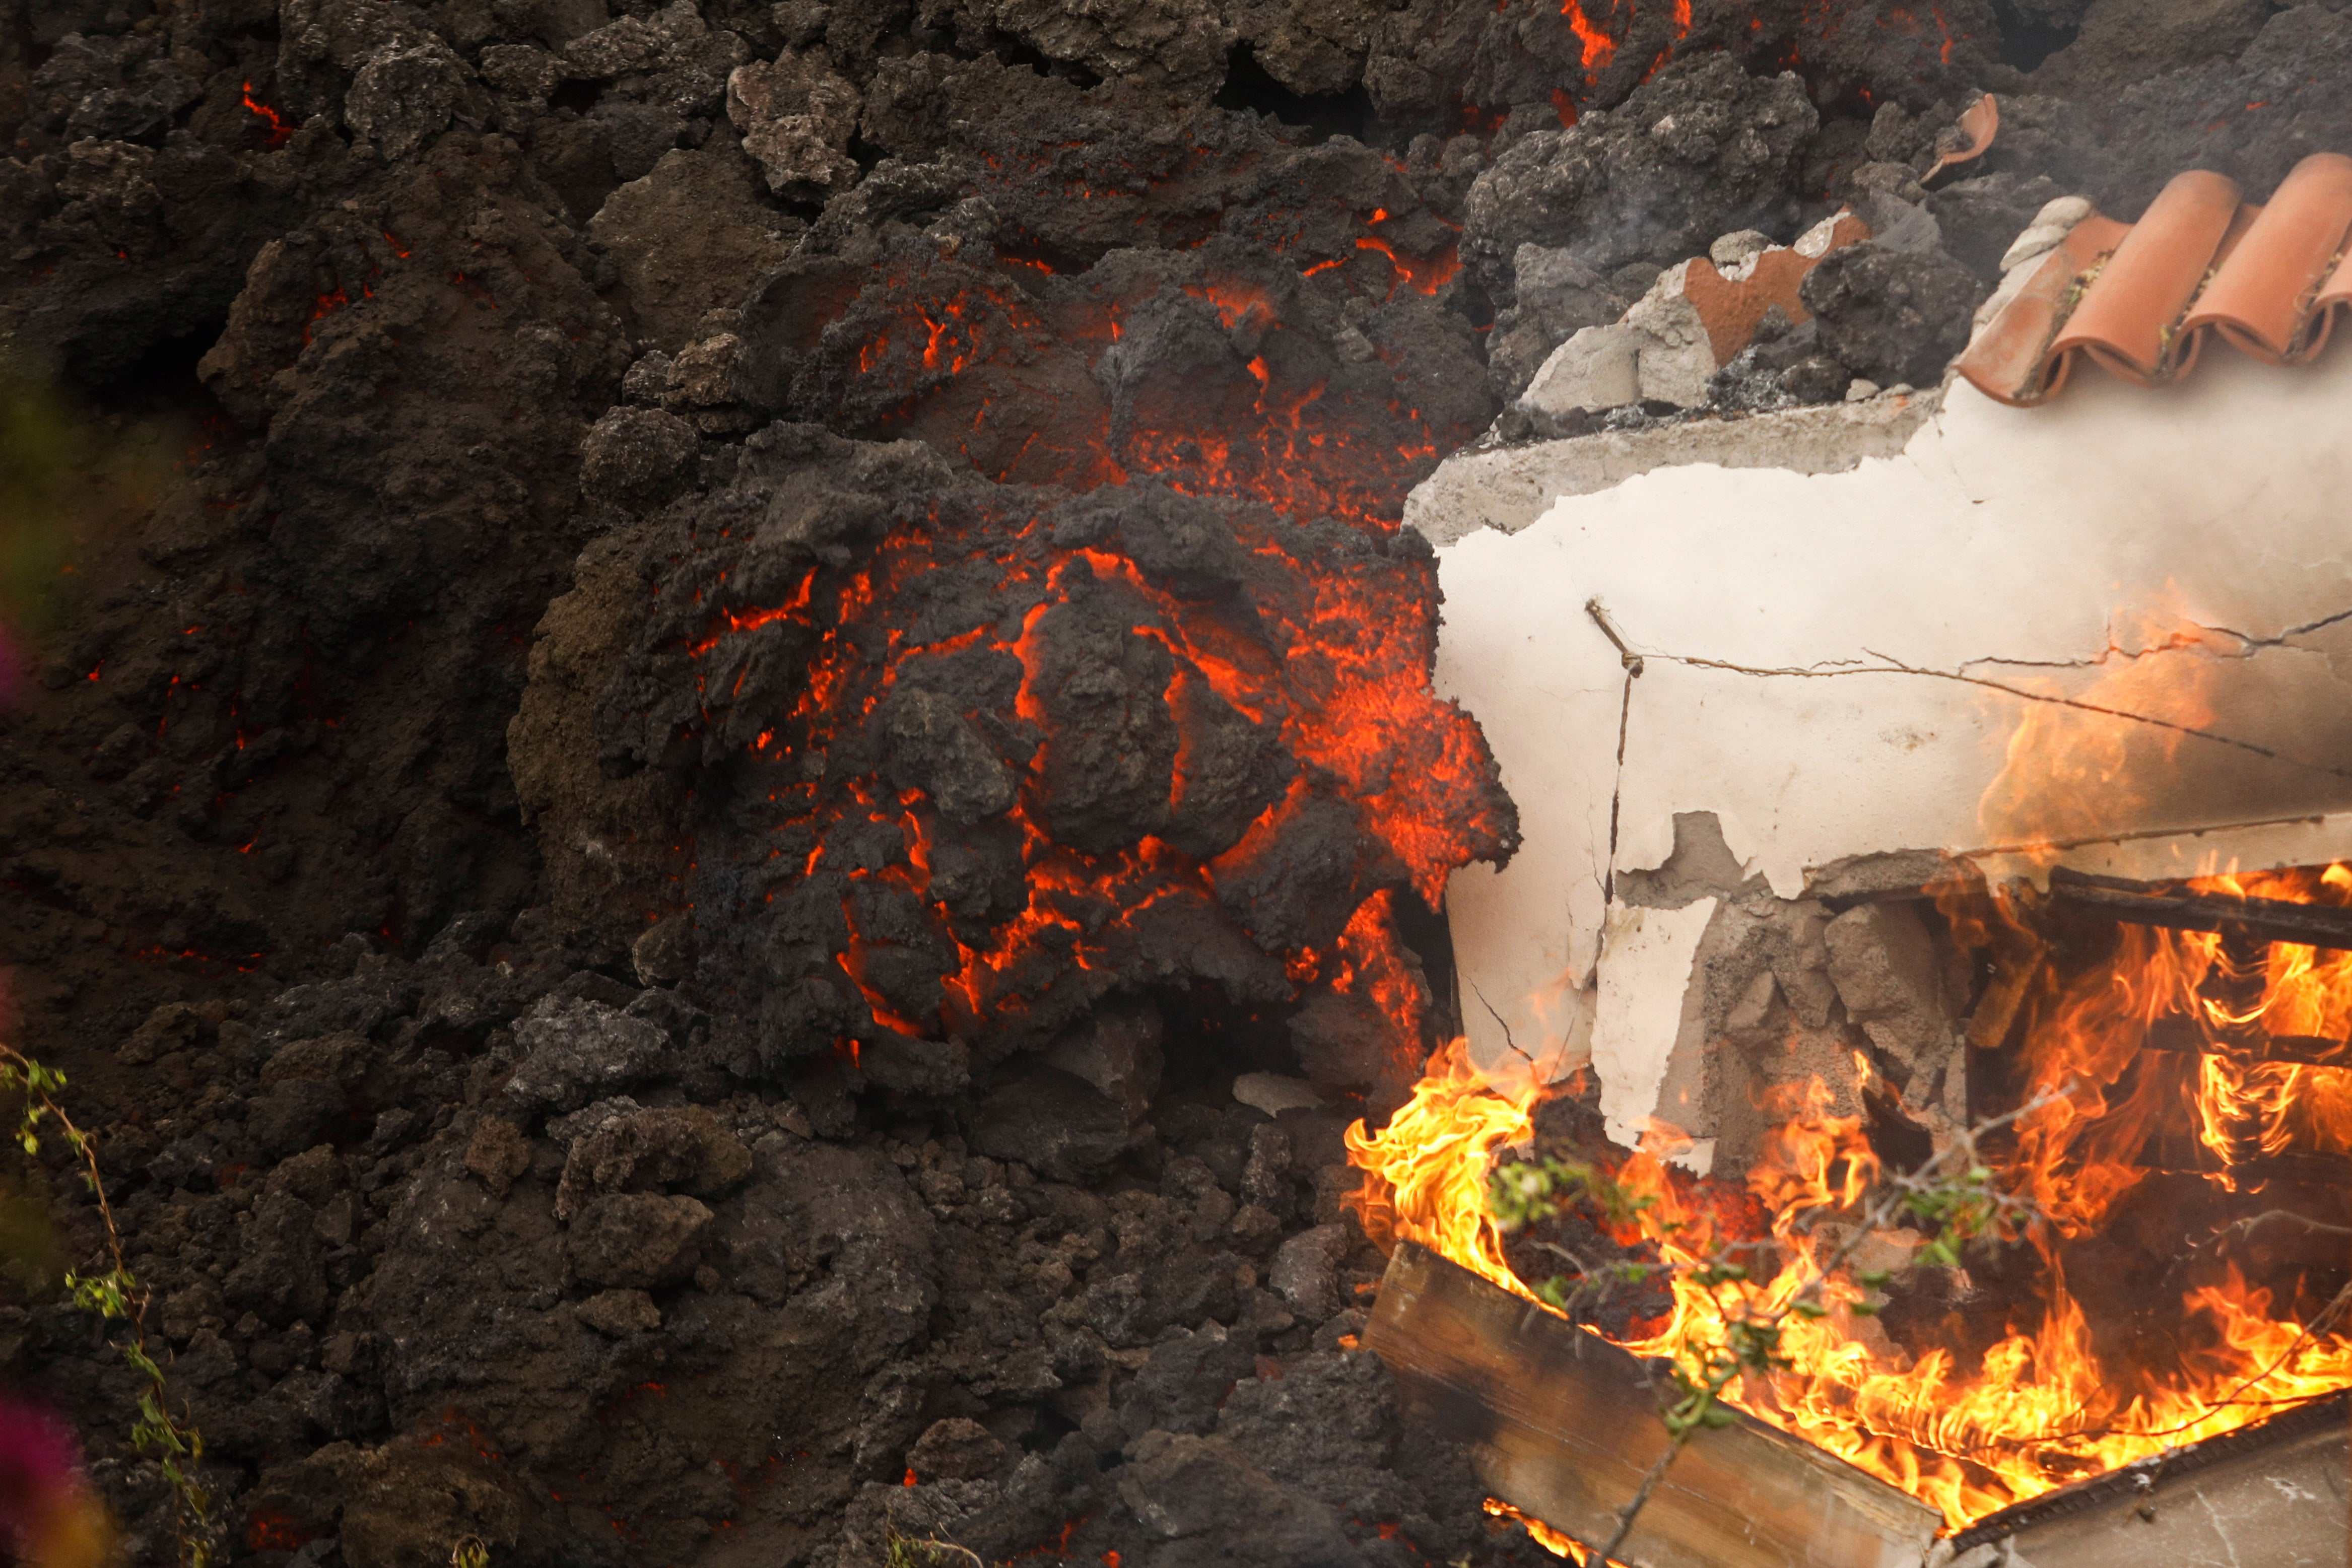 Lava Enters Populated Area in Spain's Canary Islands During Eruption (PHOTOS)